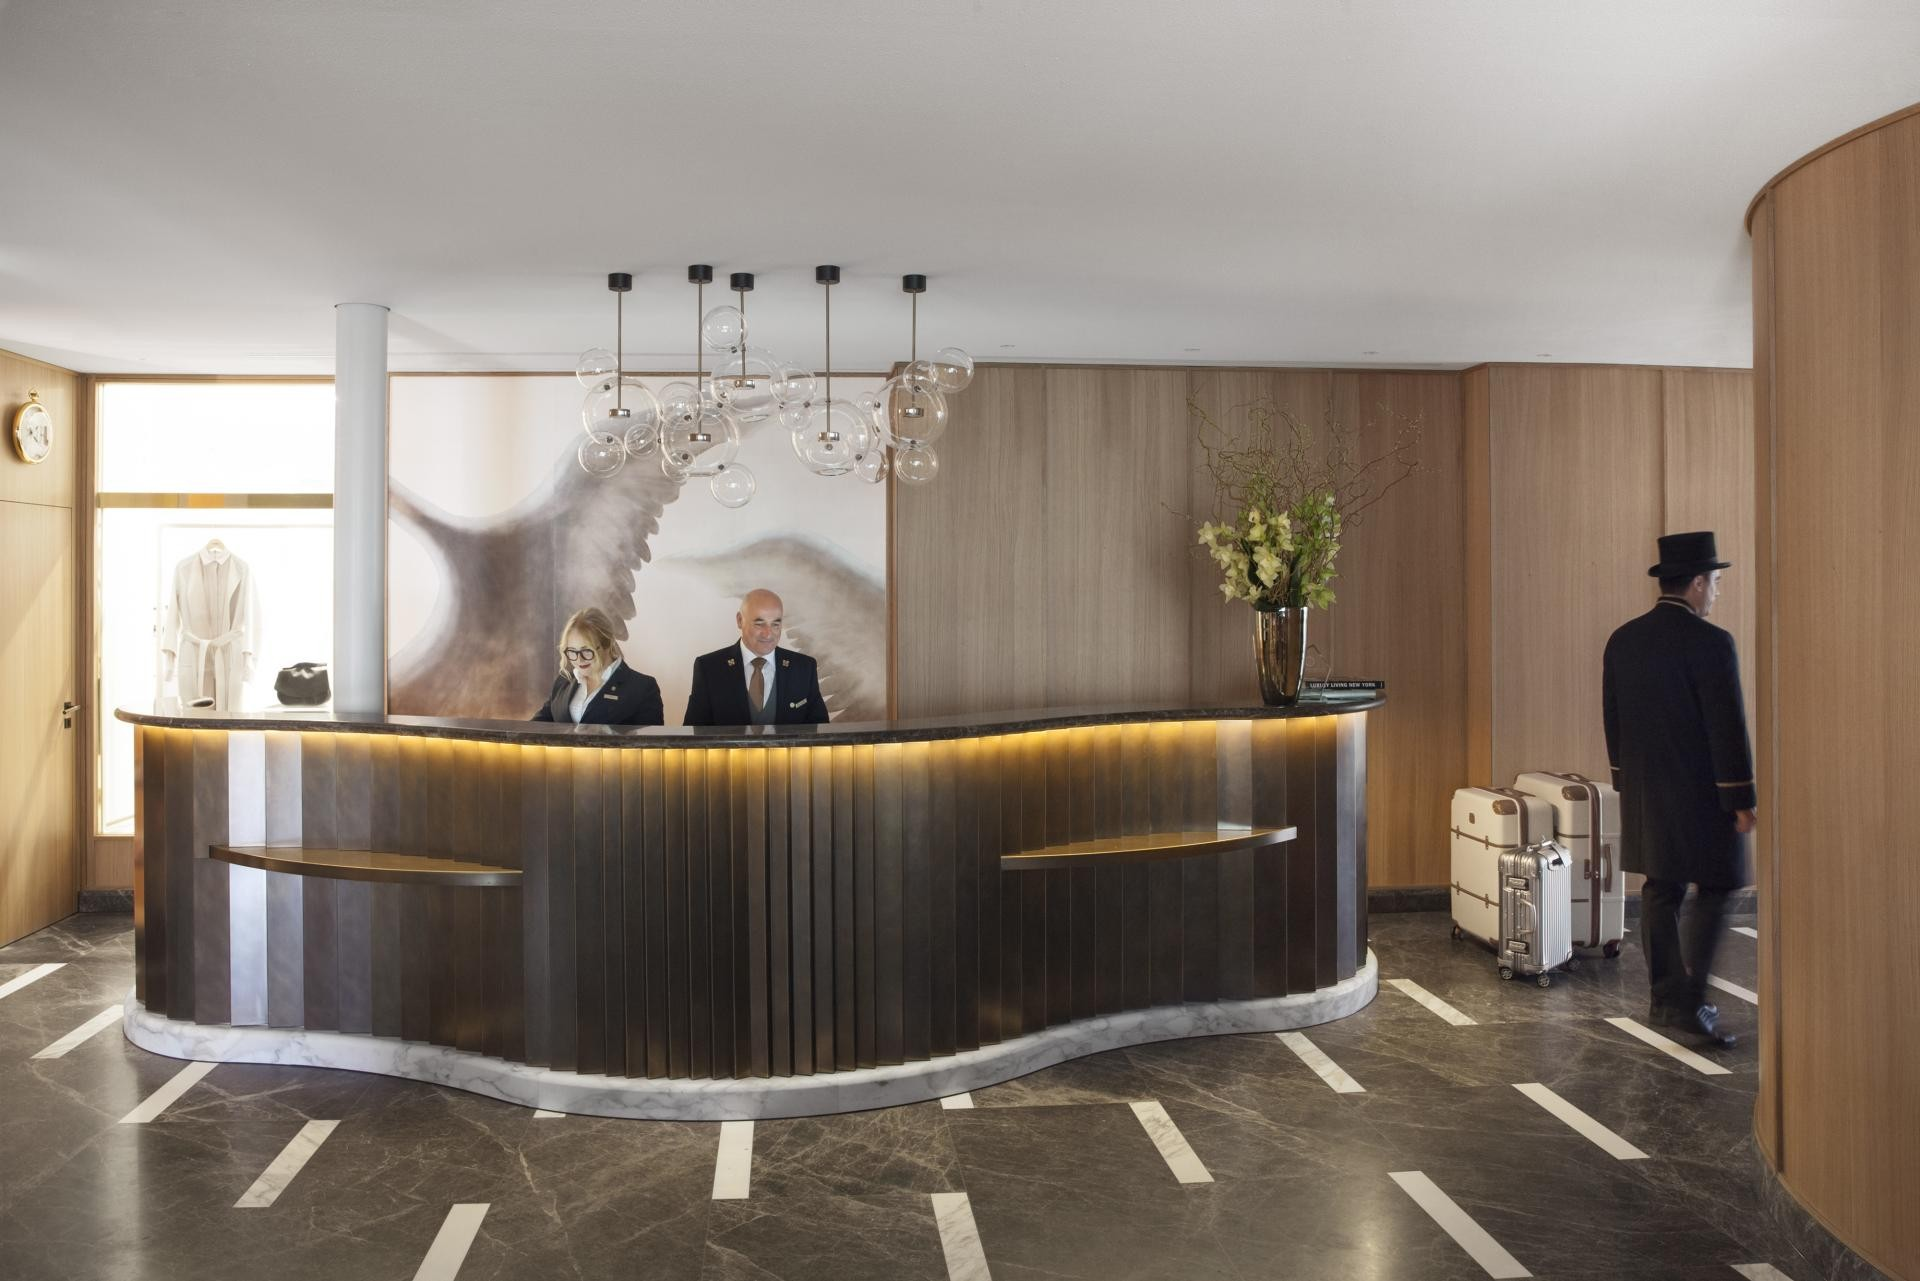 Concierge Storchen Zurich